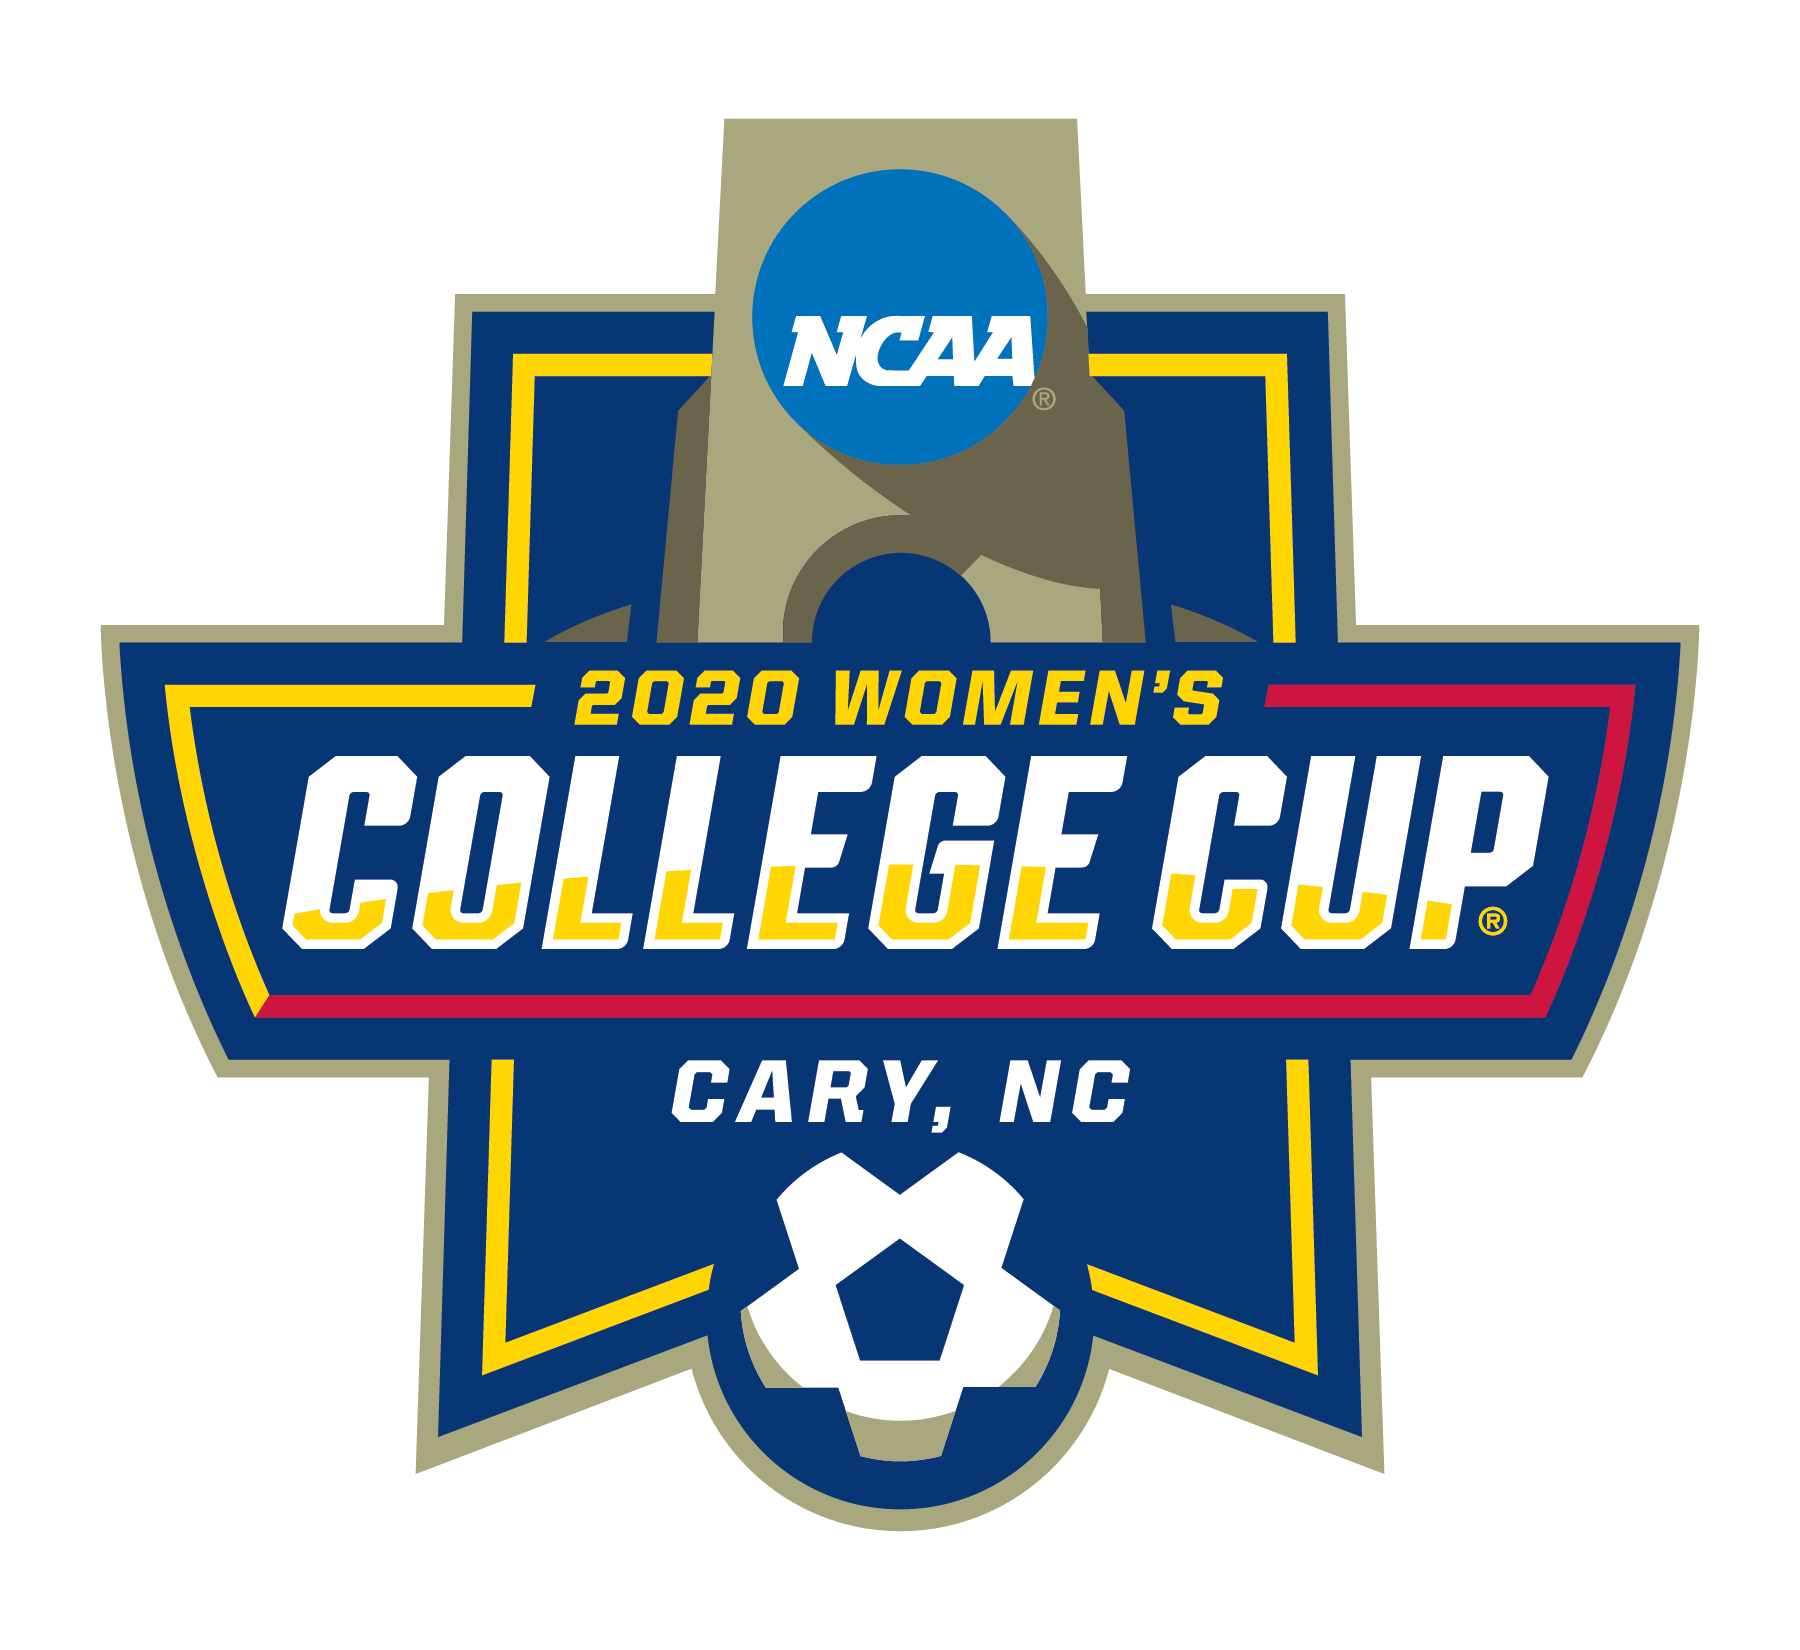 2020 Women's College Cup